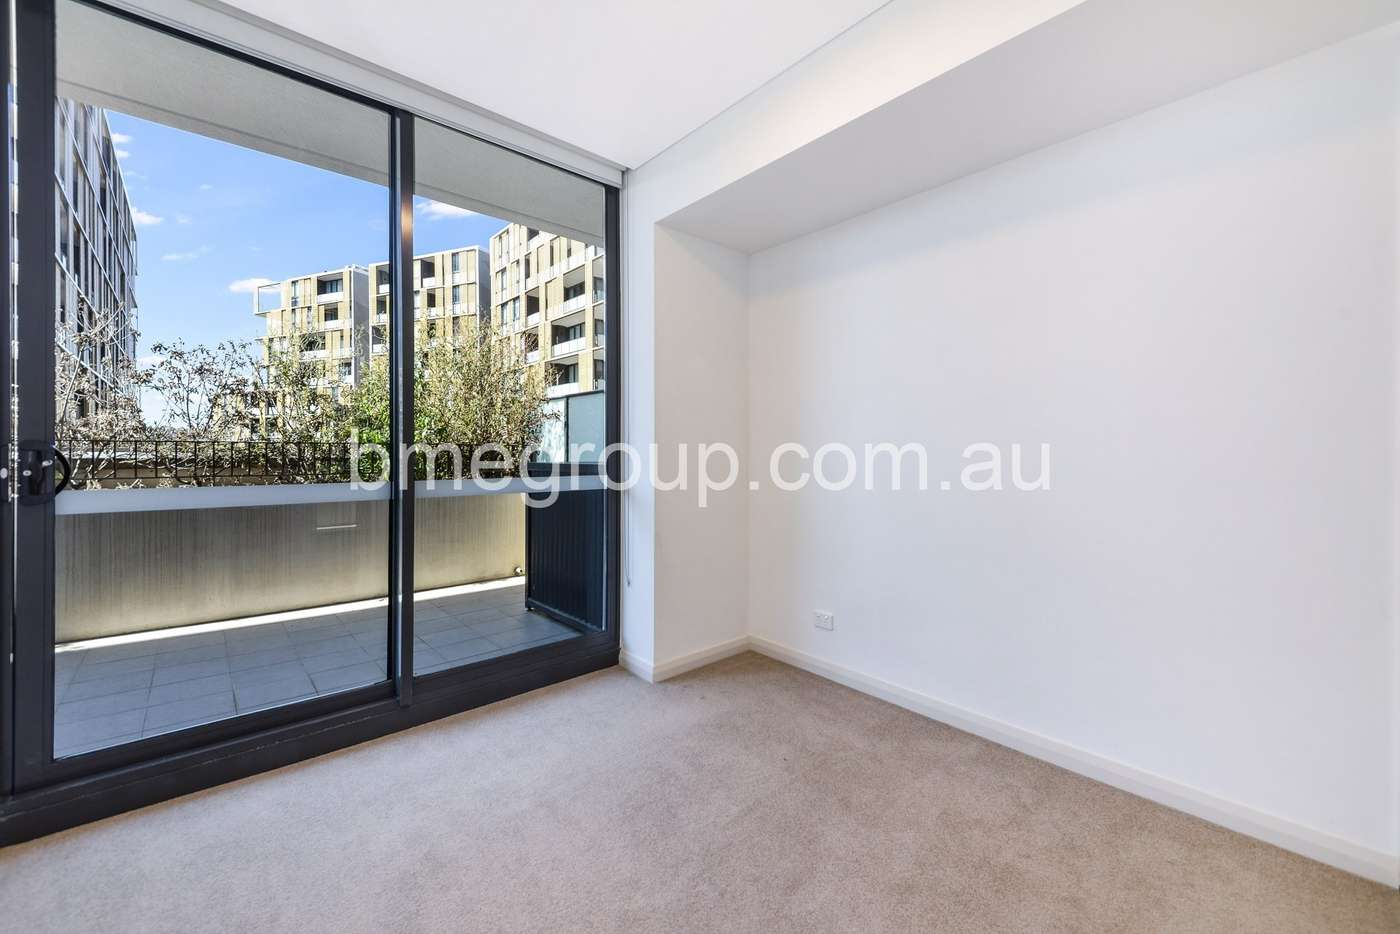 Fifth view of Homely apartment listing, Unit 402/57 Hill Rd, Wentworth Point NSW 2127